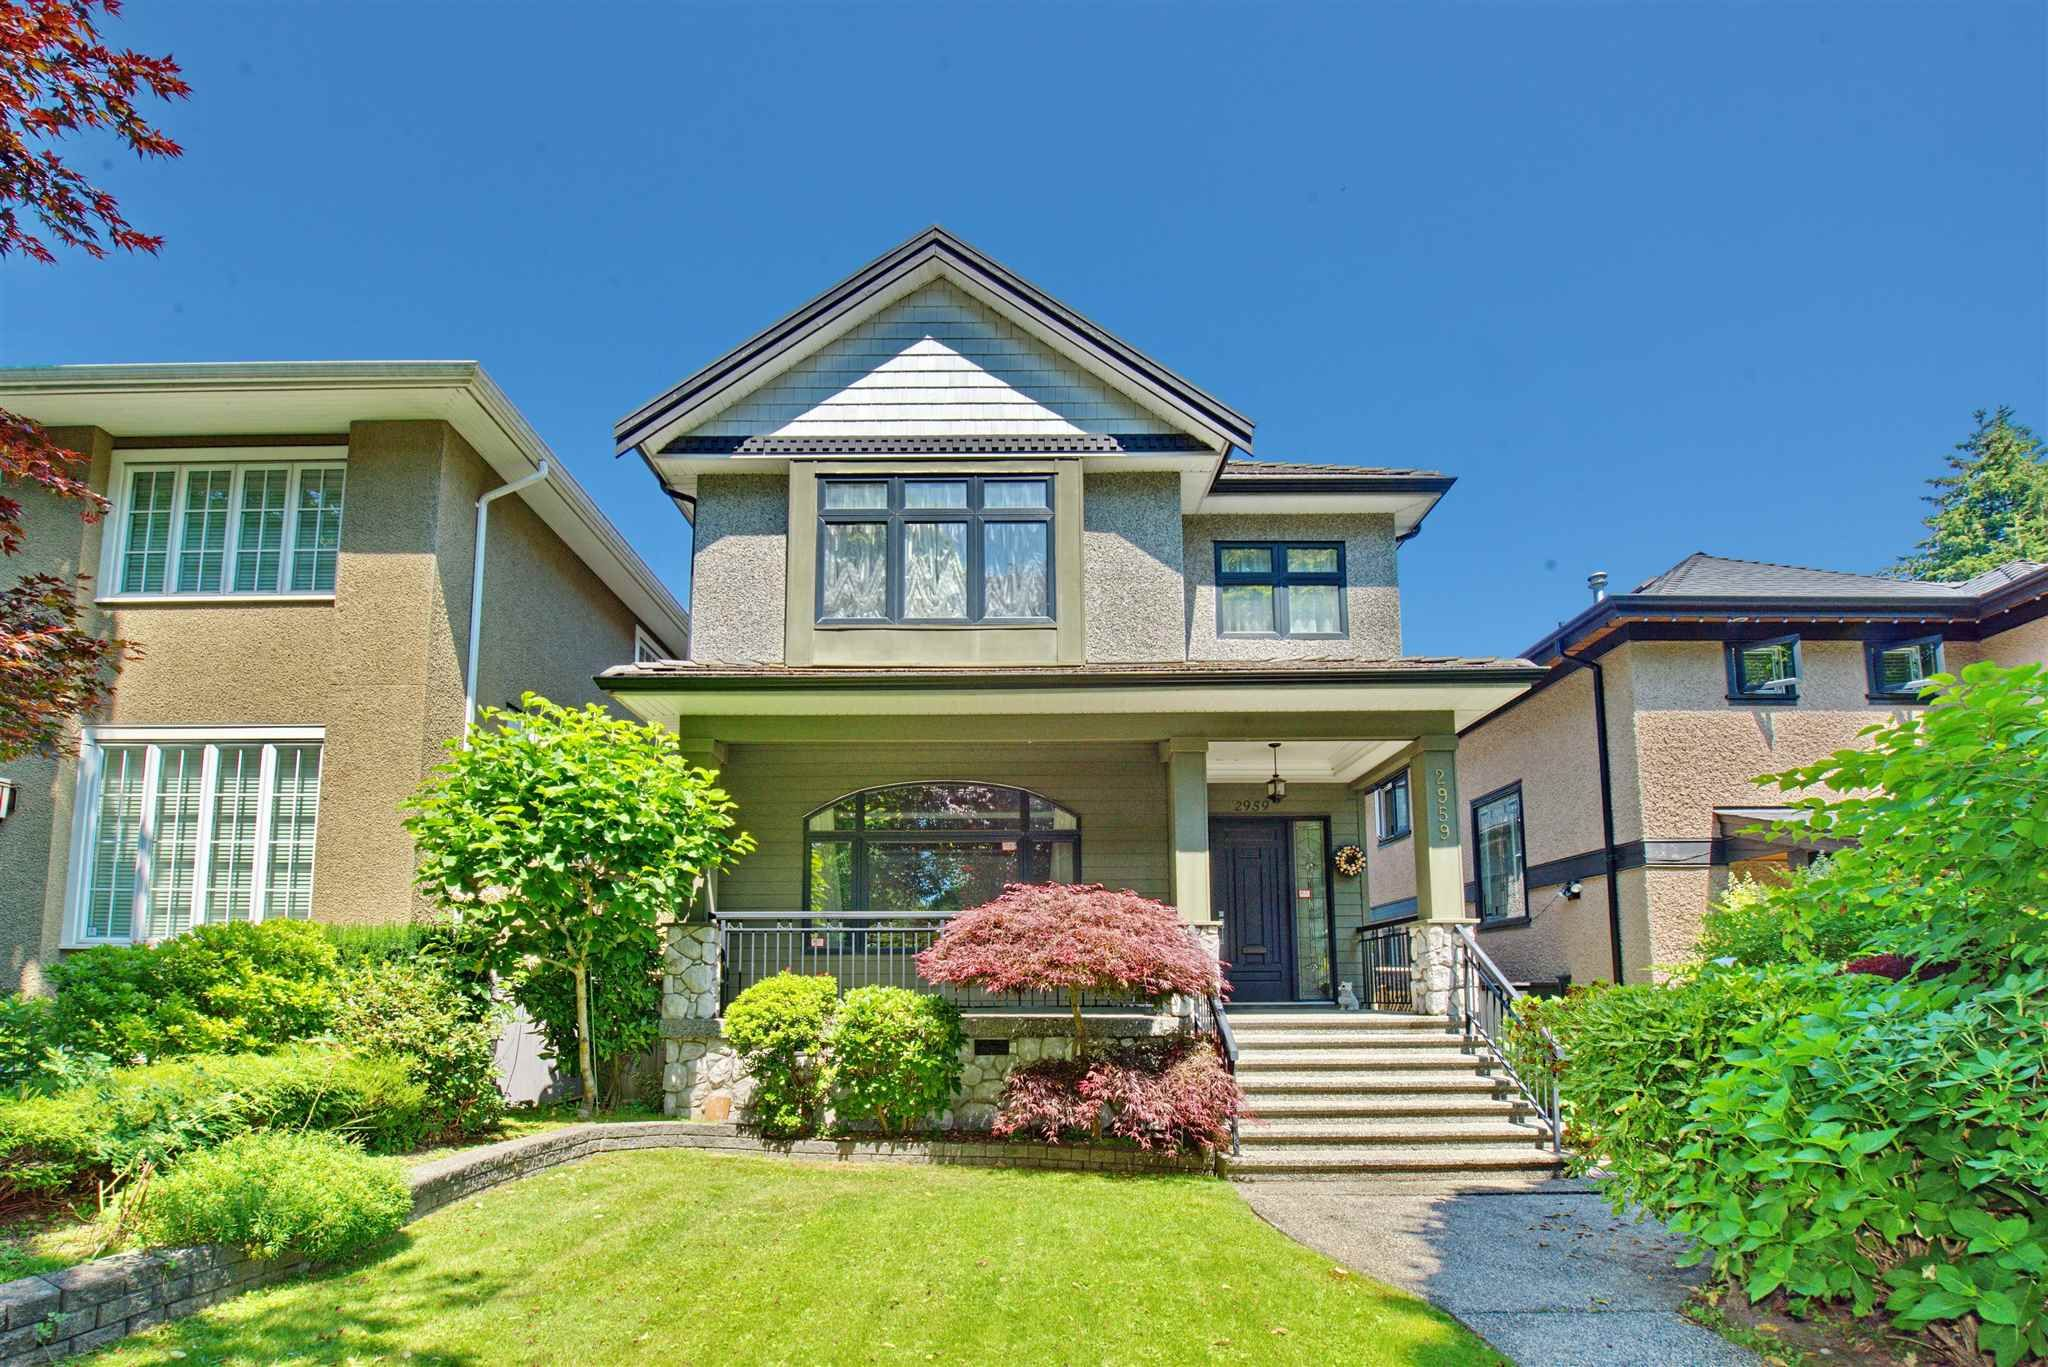 Main Photo: 2959 W 34TH Avenue in Vancouver: MacKenzie Heights House for sale (Vancouver West)  : MLS®# R2599500